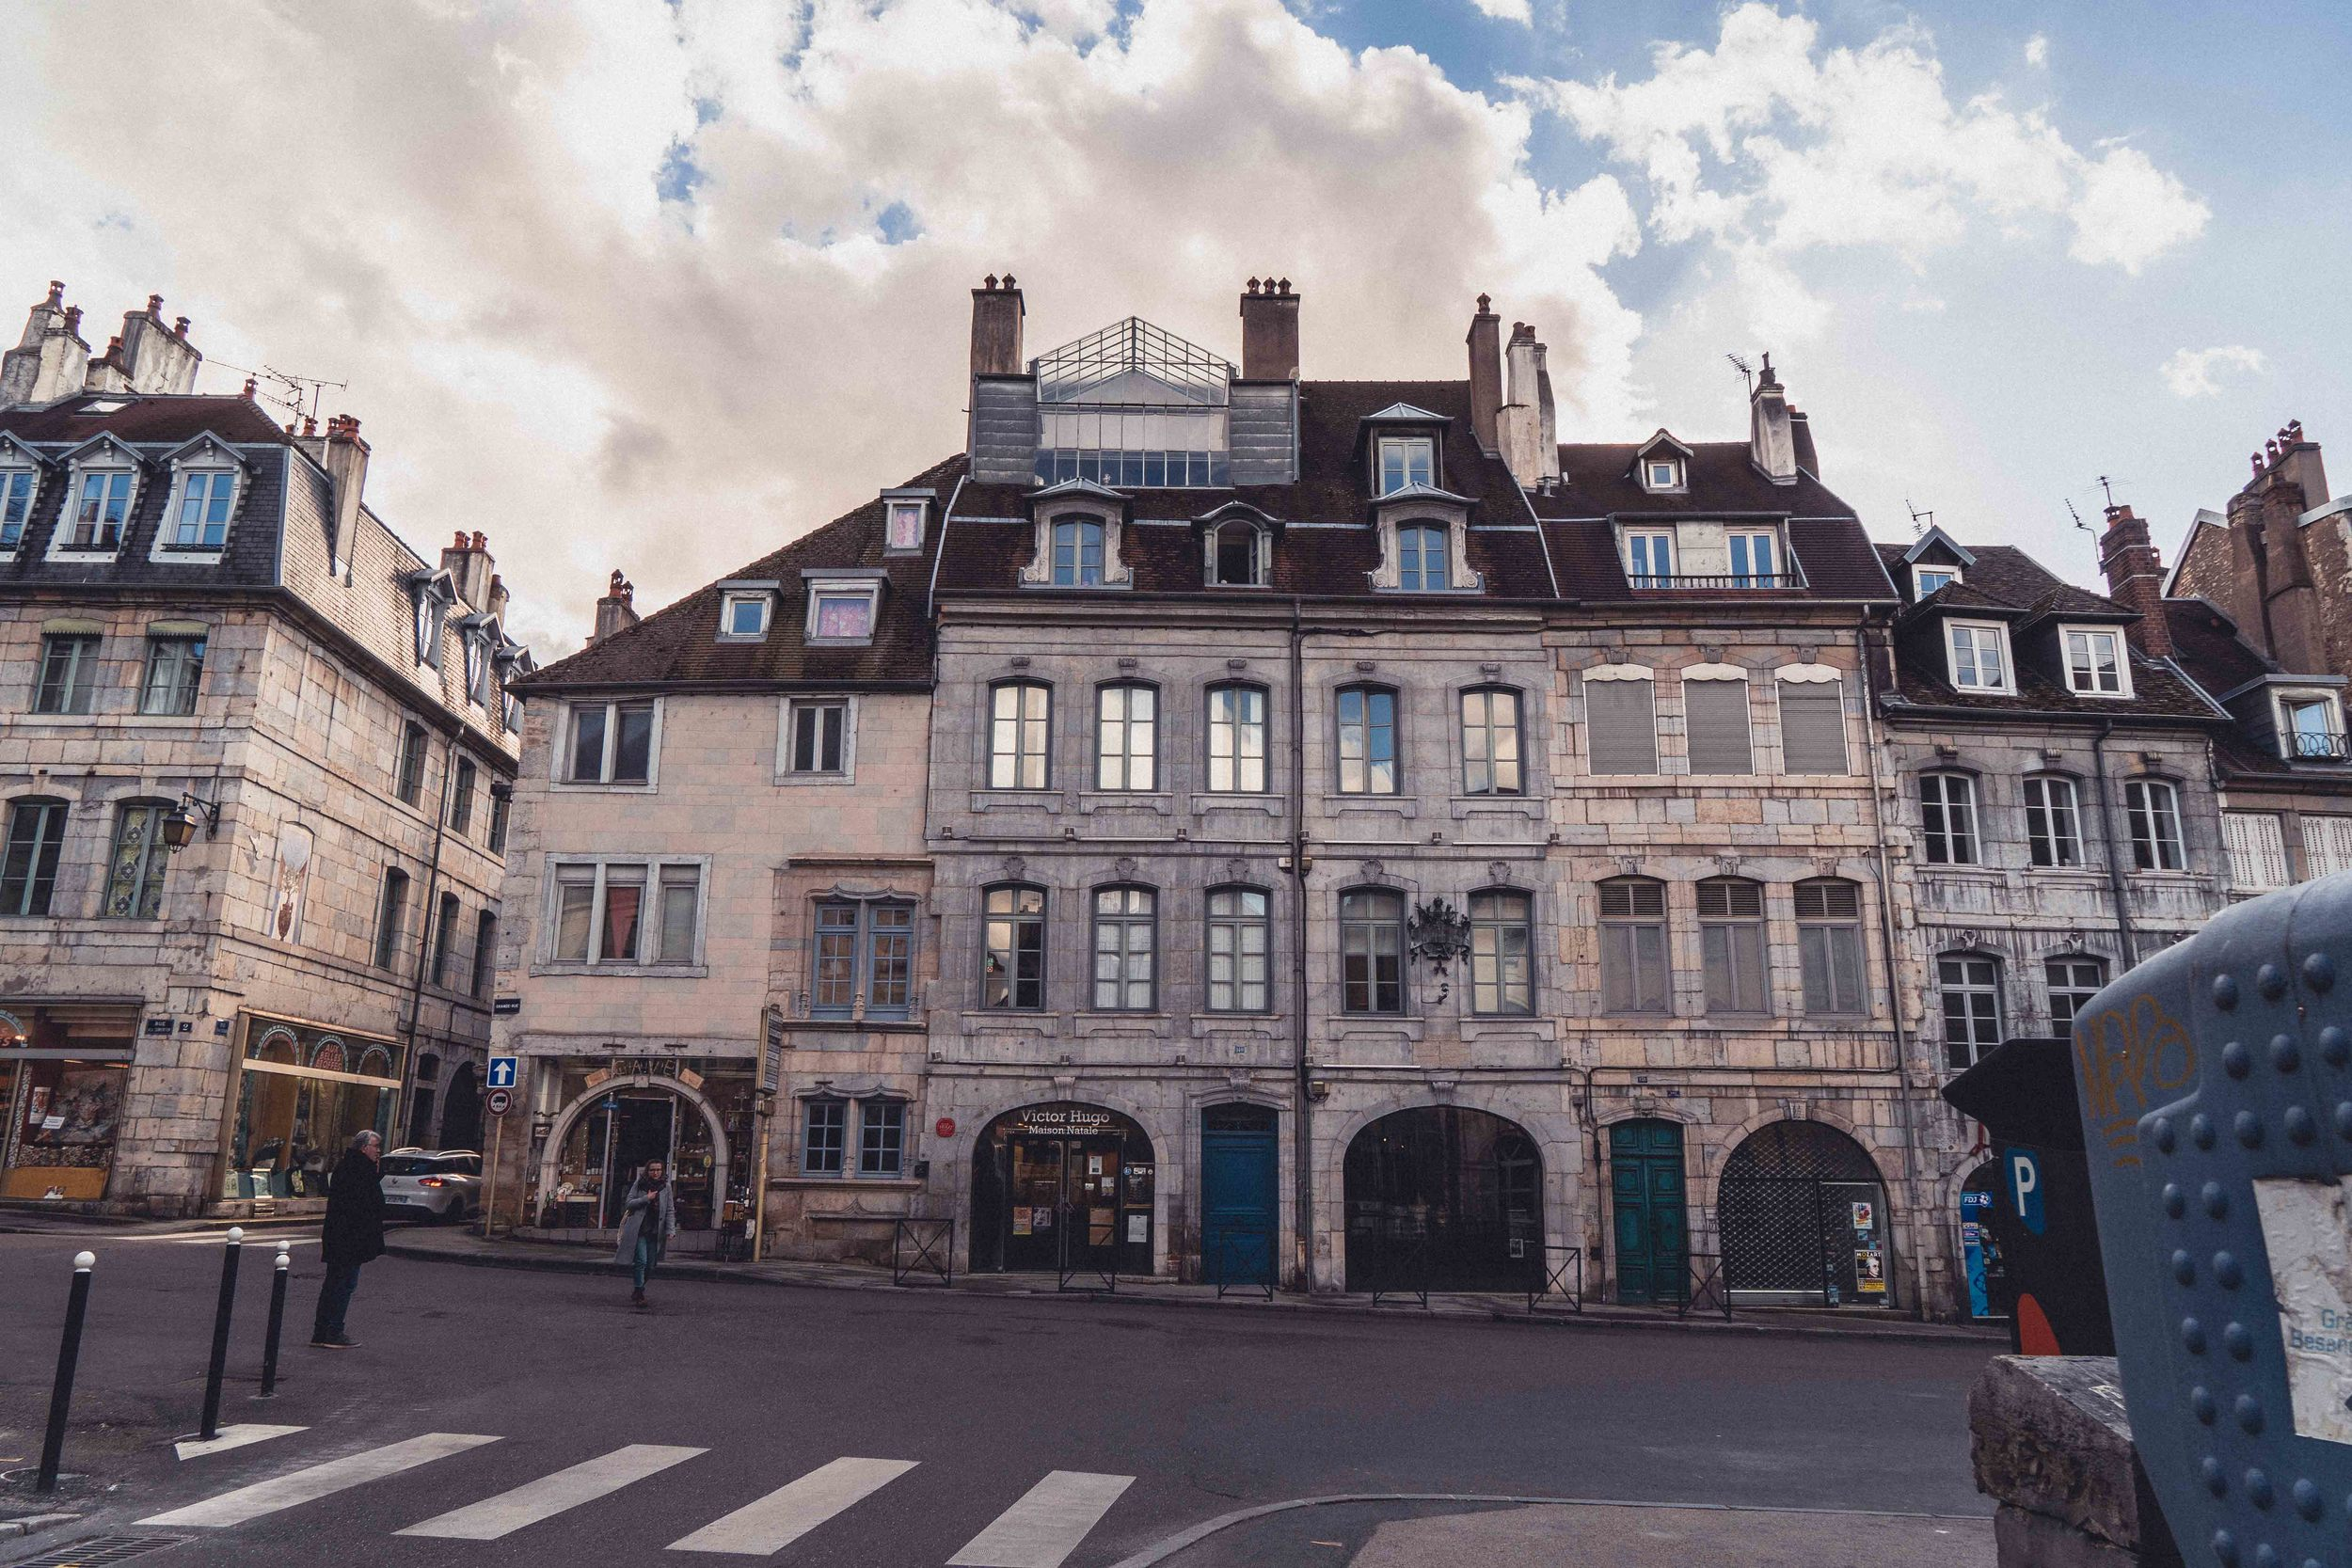 Exterior on a cloudy day of How to visit the birthplace of Victor Hugo in Besançon